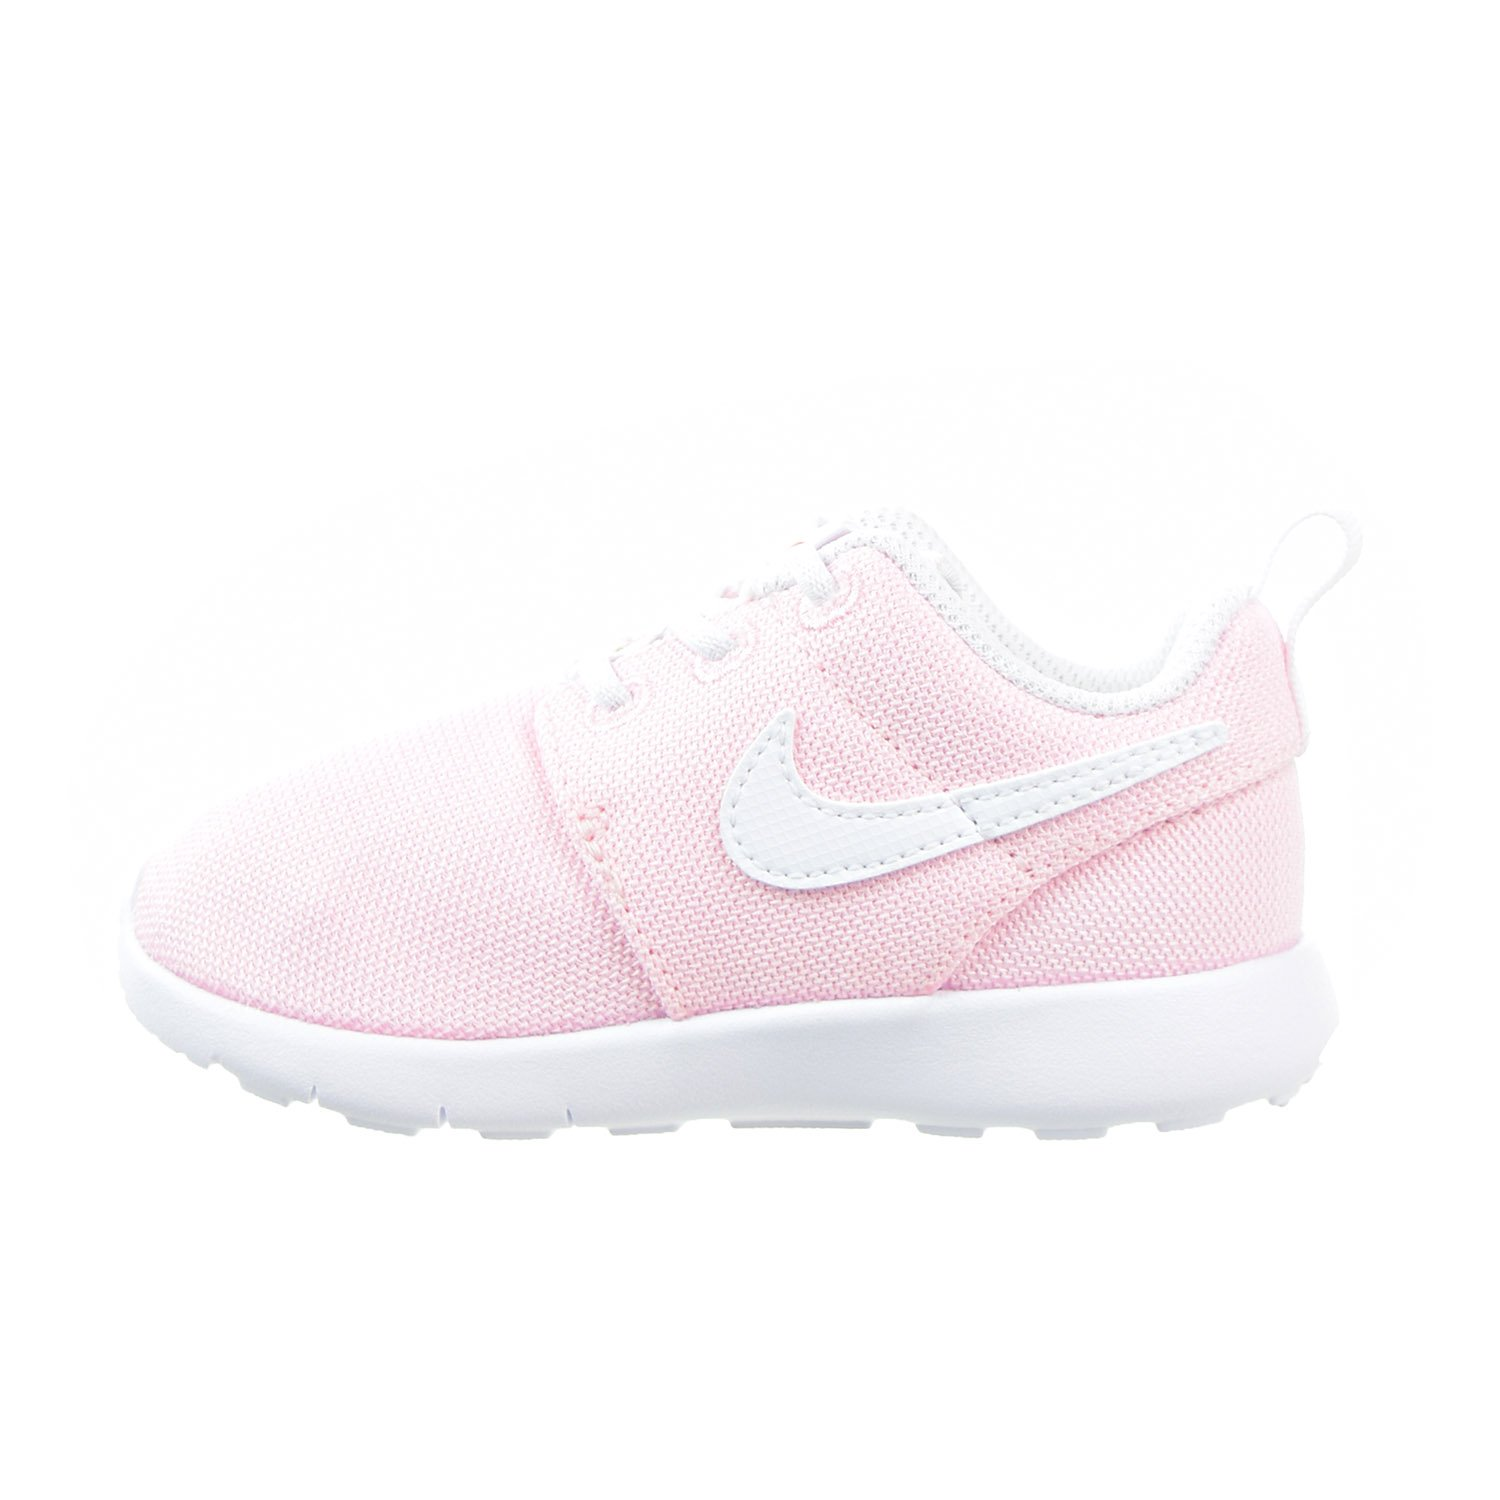 3ca6710ec5187 NIKE Roshe One (TDV) Toddler Shoes Prism Pink White-Safety Orange  749425-613 Pink Size  5  Amazon.co.uk  Shoes   Bags